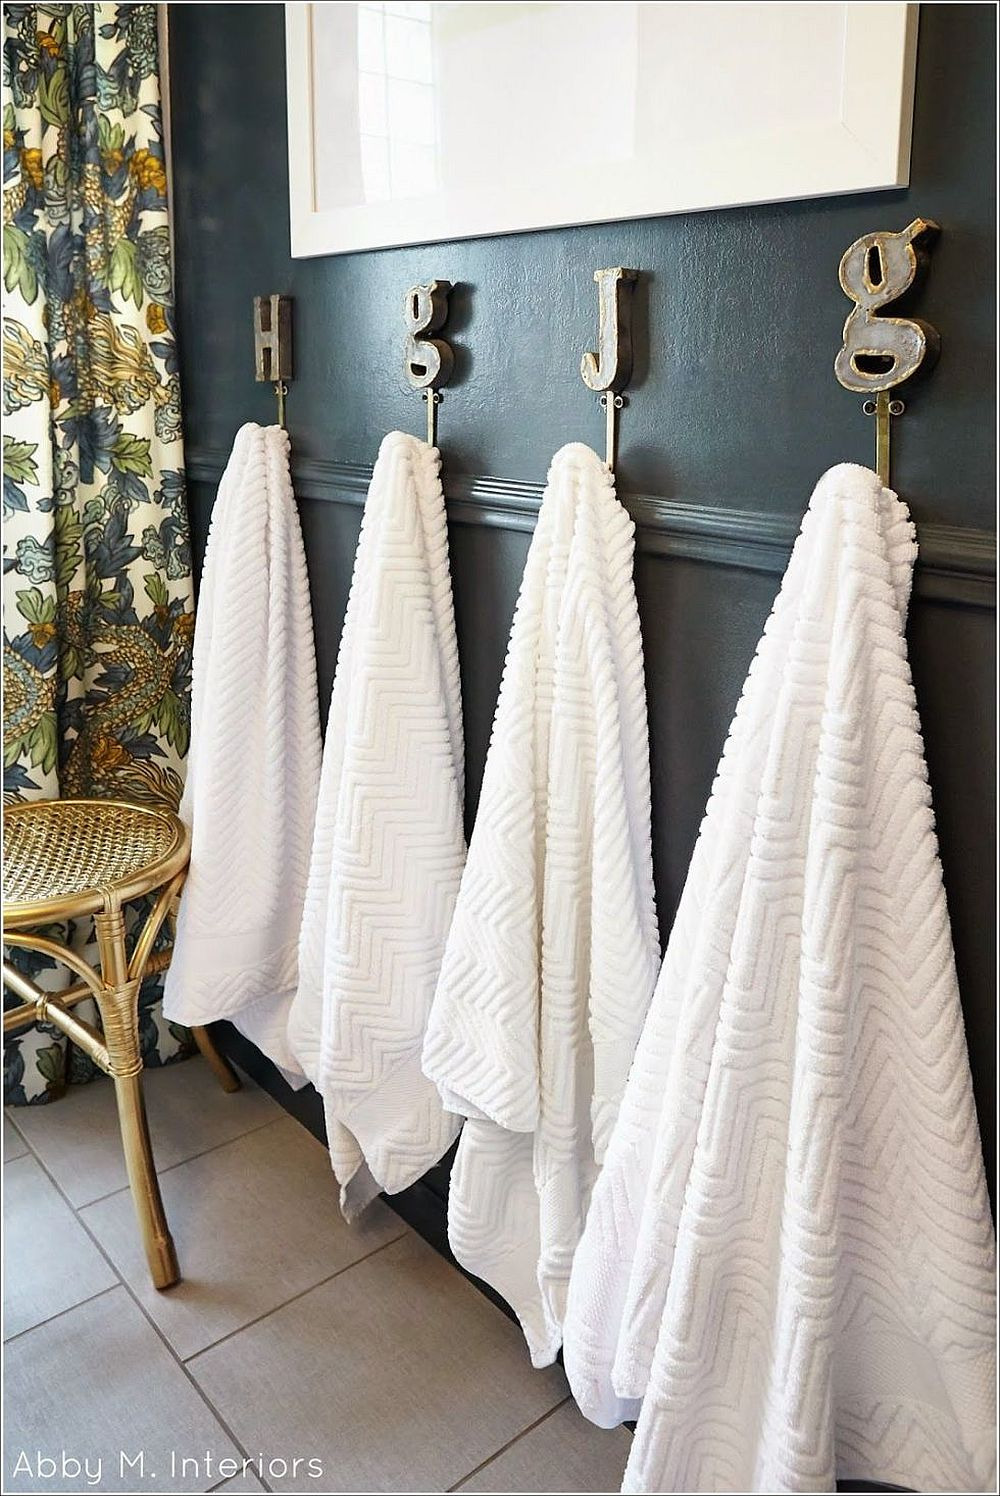 over the wall hooks towel hooks instead of towel bar decorative wall hooks for pictures coat hooks walmart decorative towel hooks